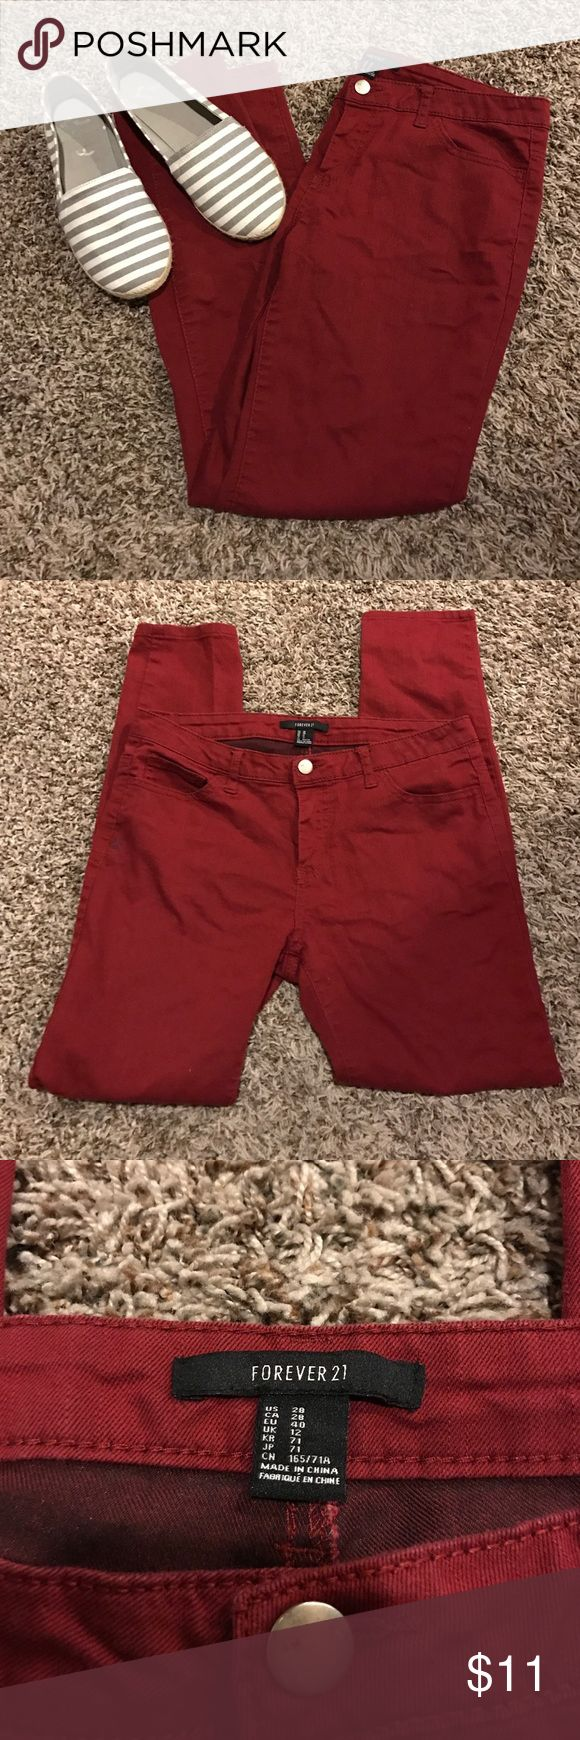 Maroon skinny jeans Forever 21 maroon skinny jeans size 28. Only worn twice. Awesome fall/winter color! Forever 21 Jeans Skinny